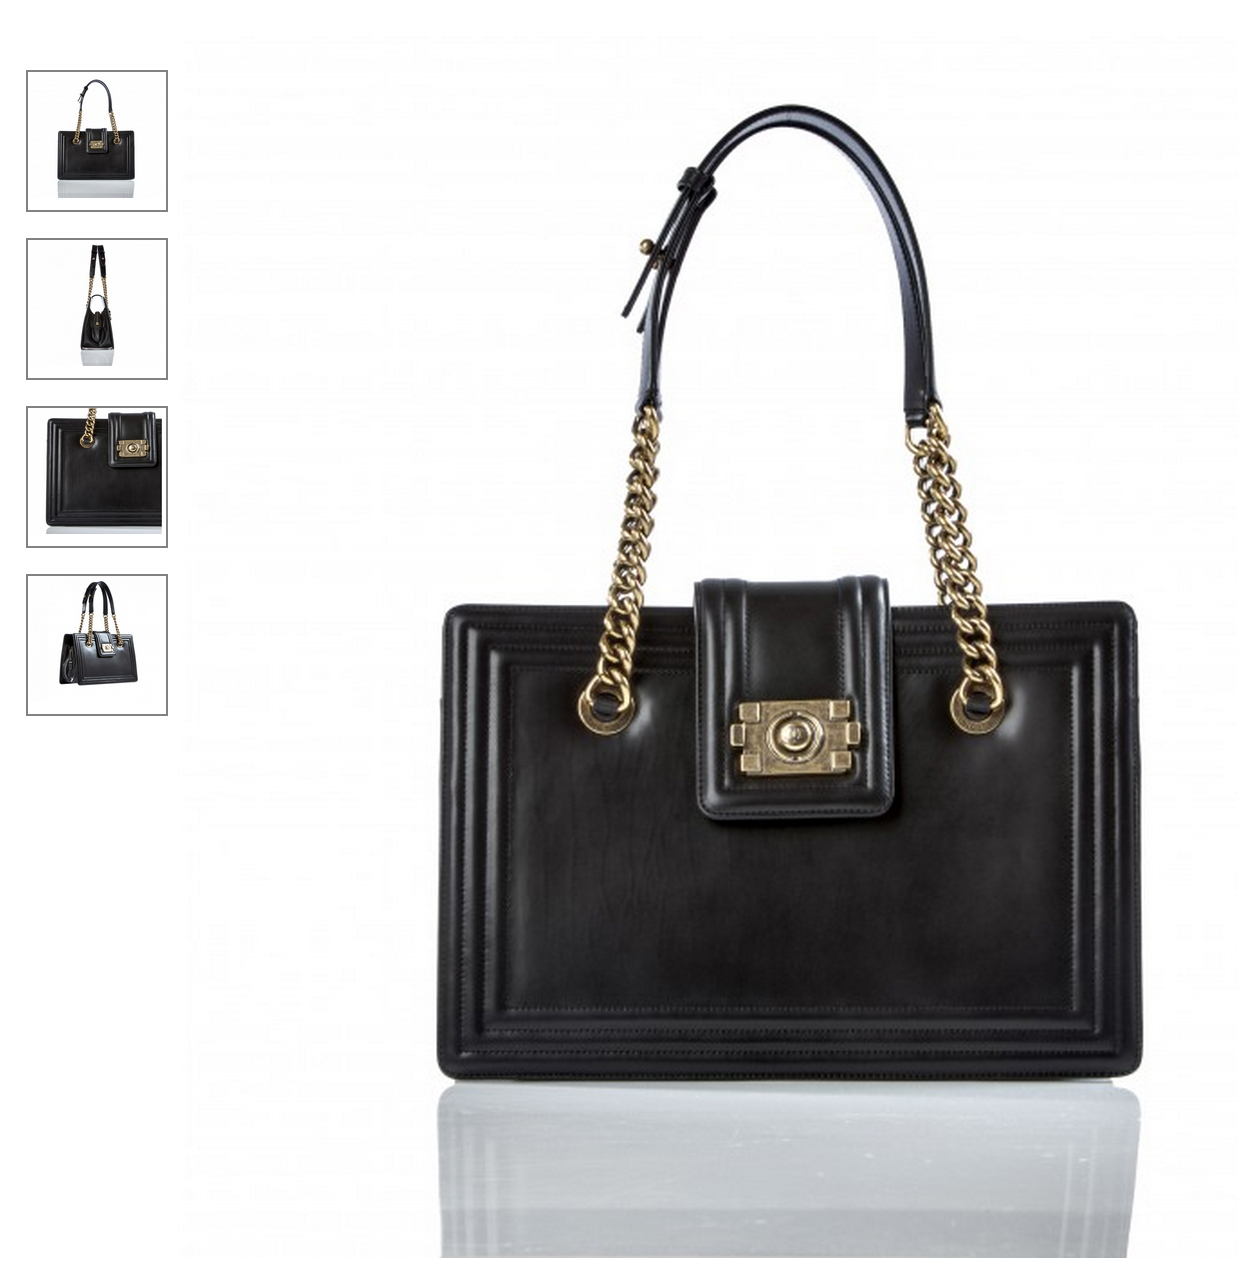 e-commerce_Photographer_Handbags3